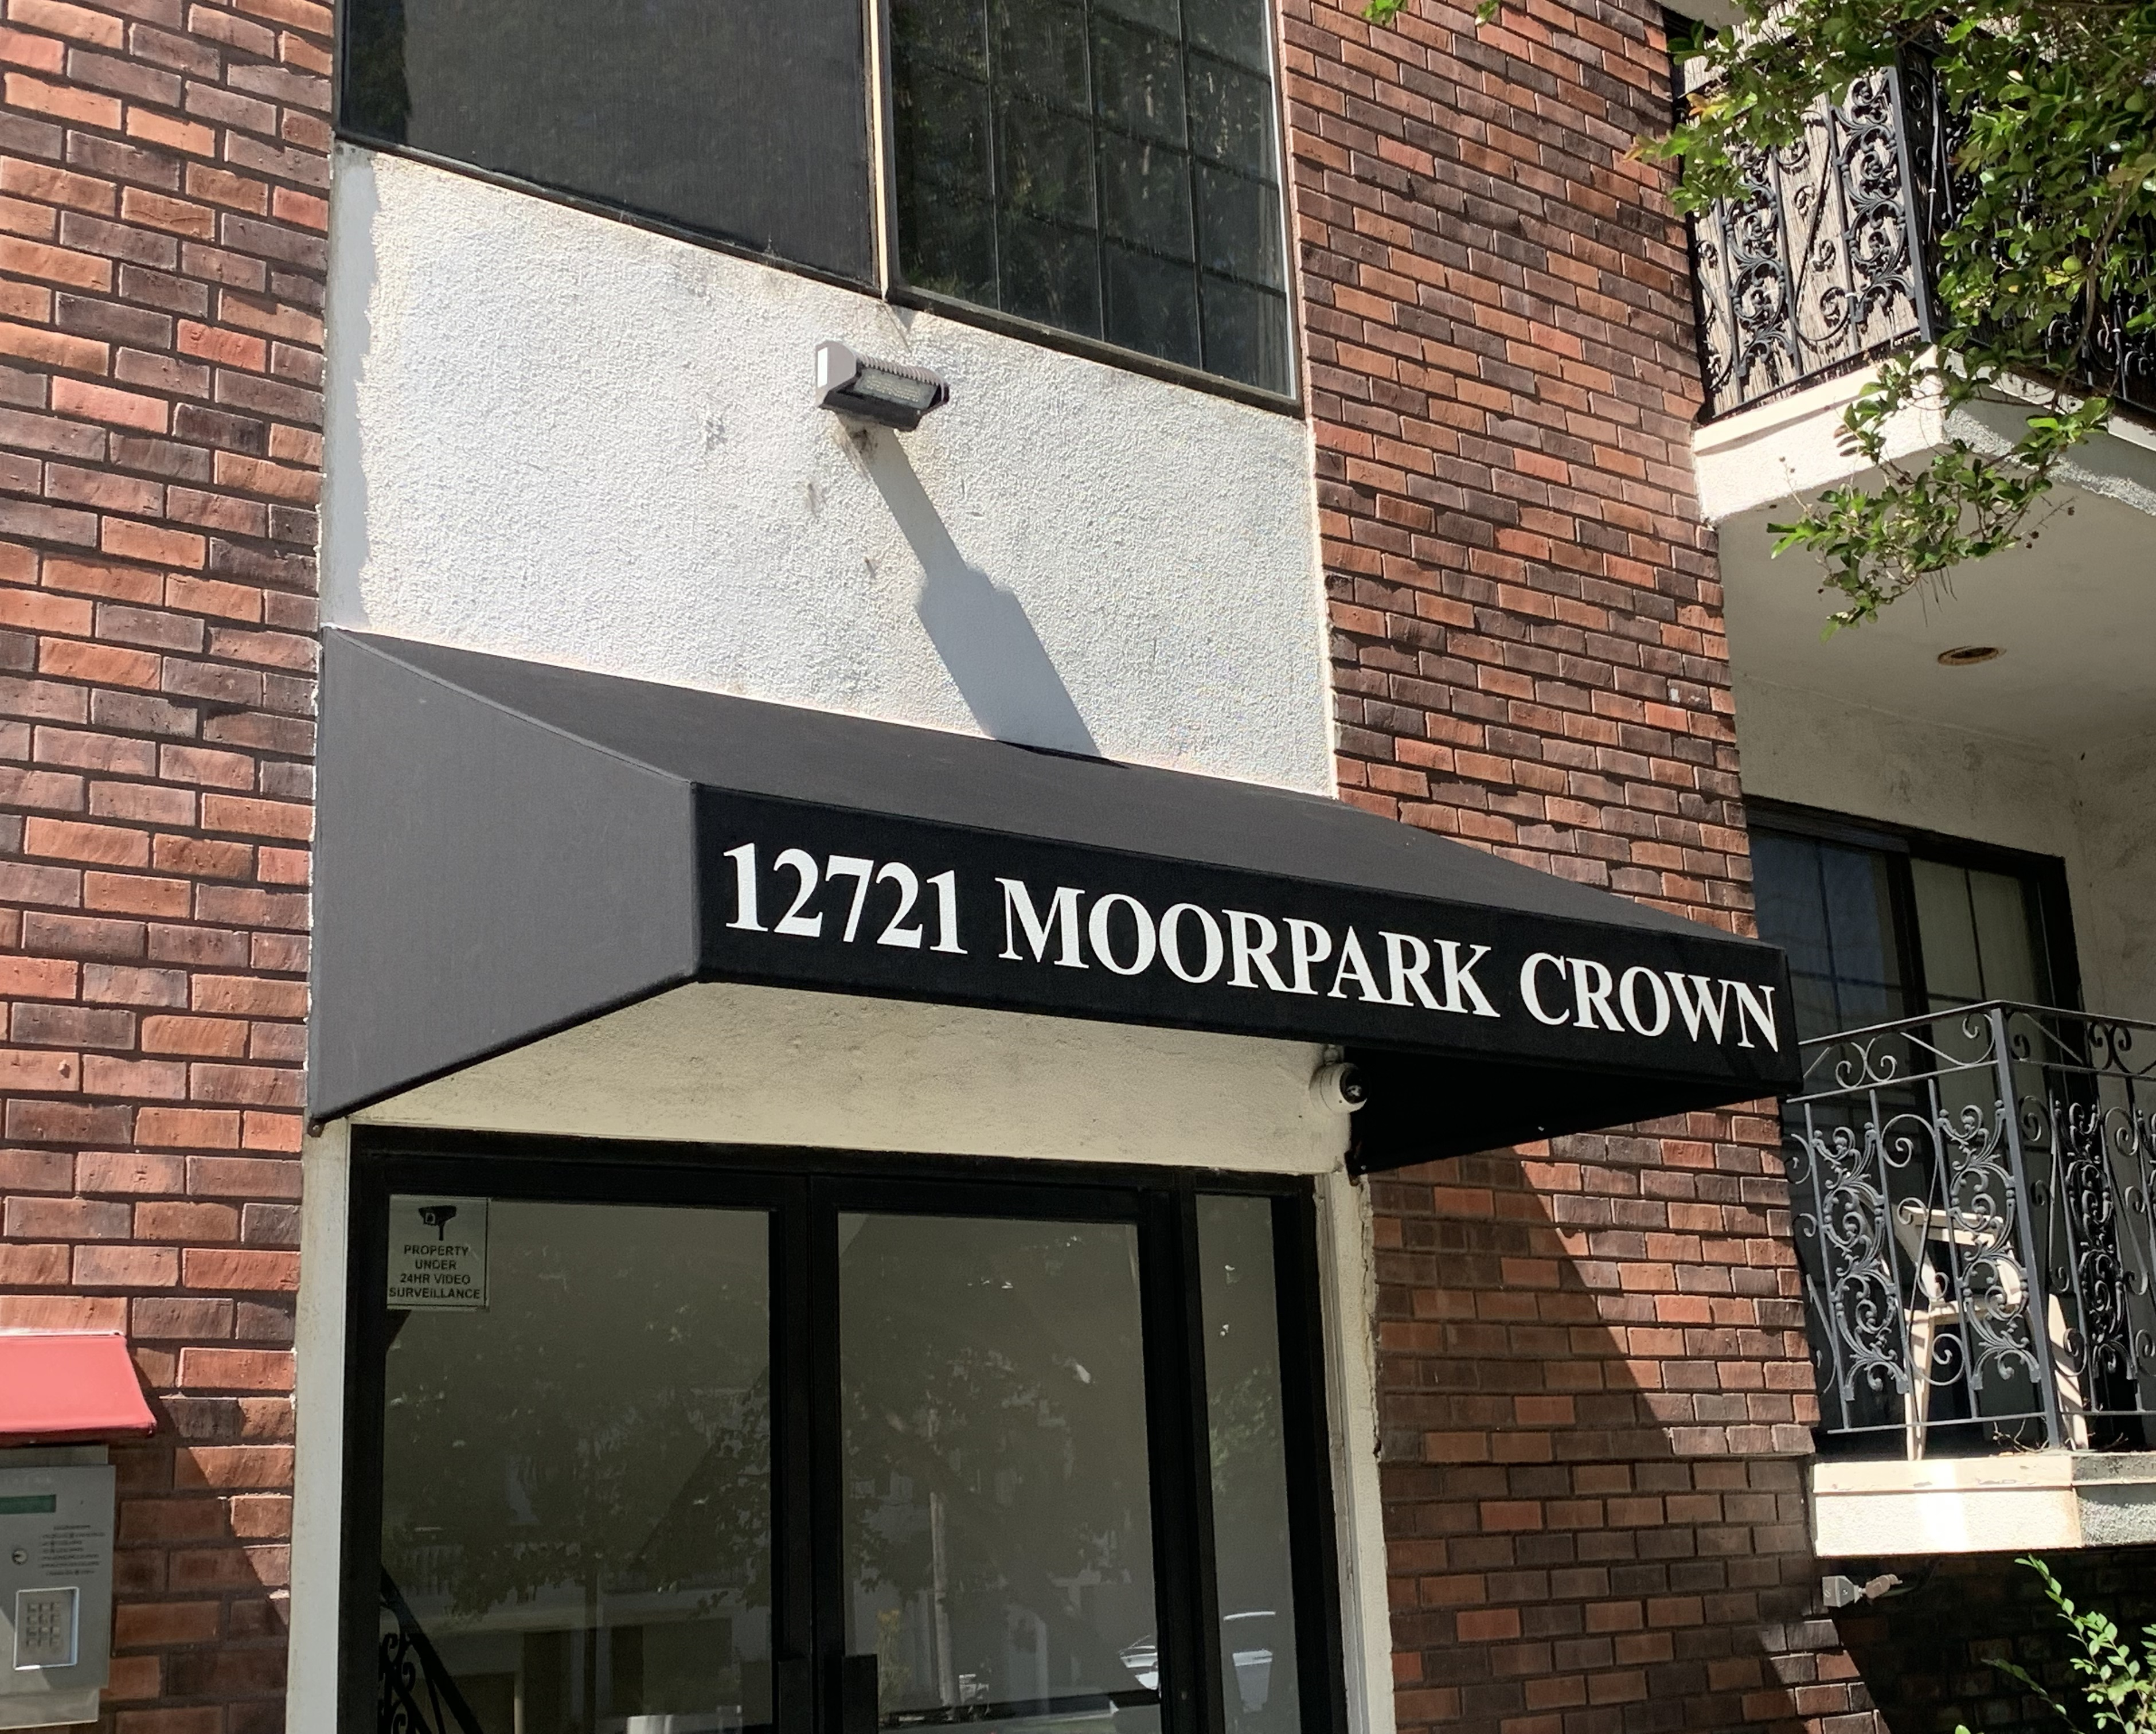 We fabricated and installed this apartment entrance awning sign for the Moorpark Crown Apartments in Studio City.